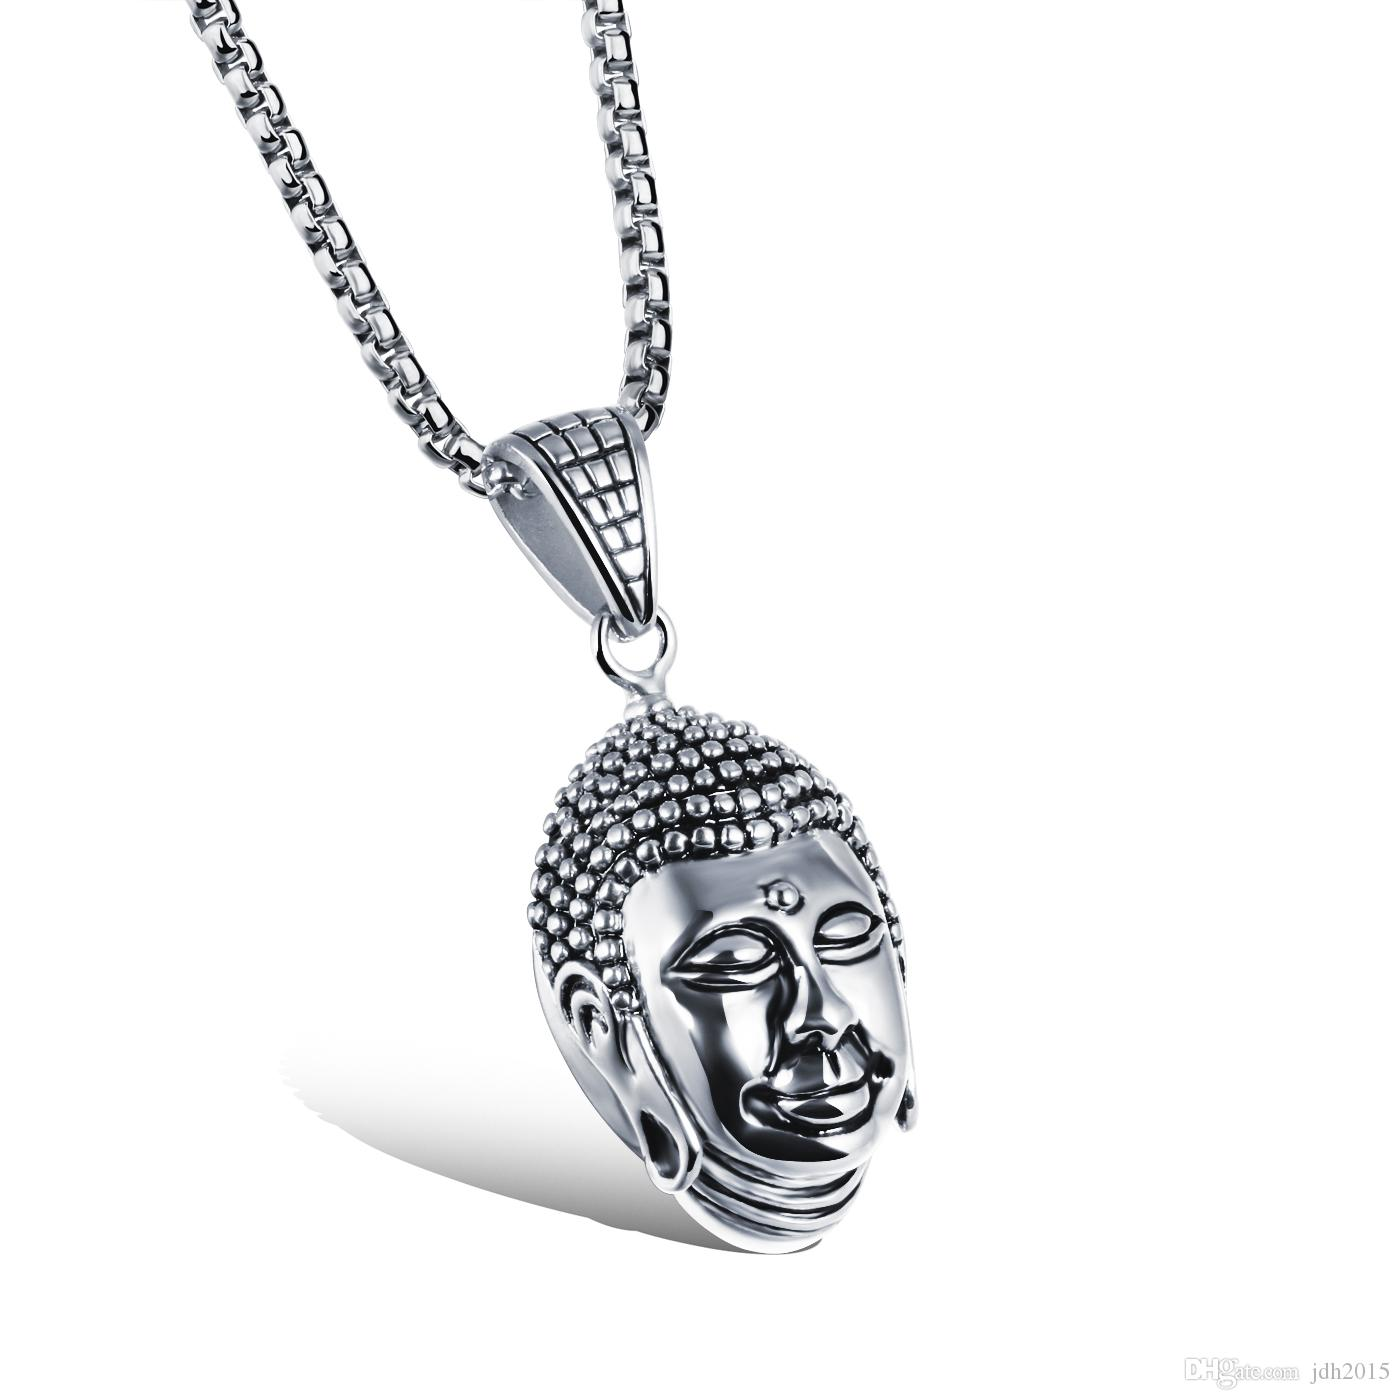 """Stainless Steel Vintage Buddha Sculpture Amulet Buddhism Prayer Pendant Necklace with Box Chain 22"""""""